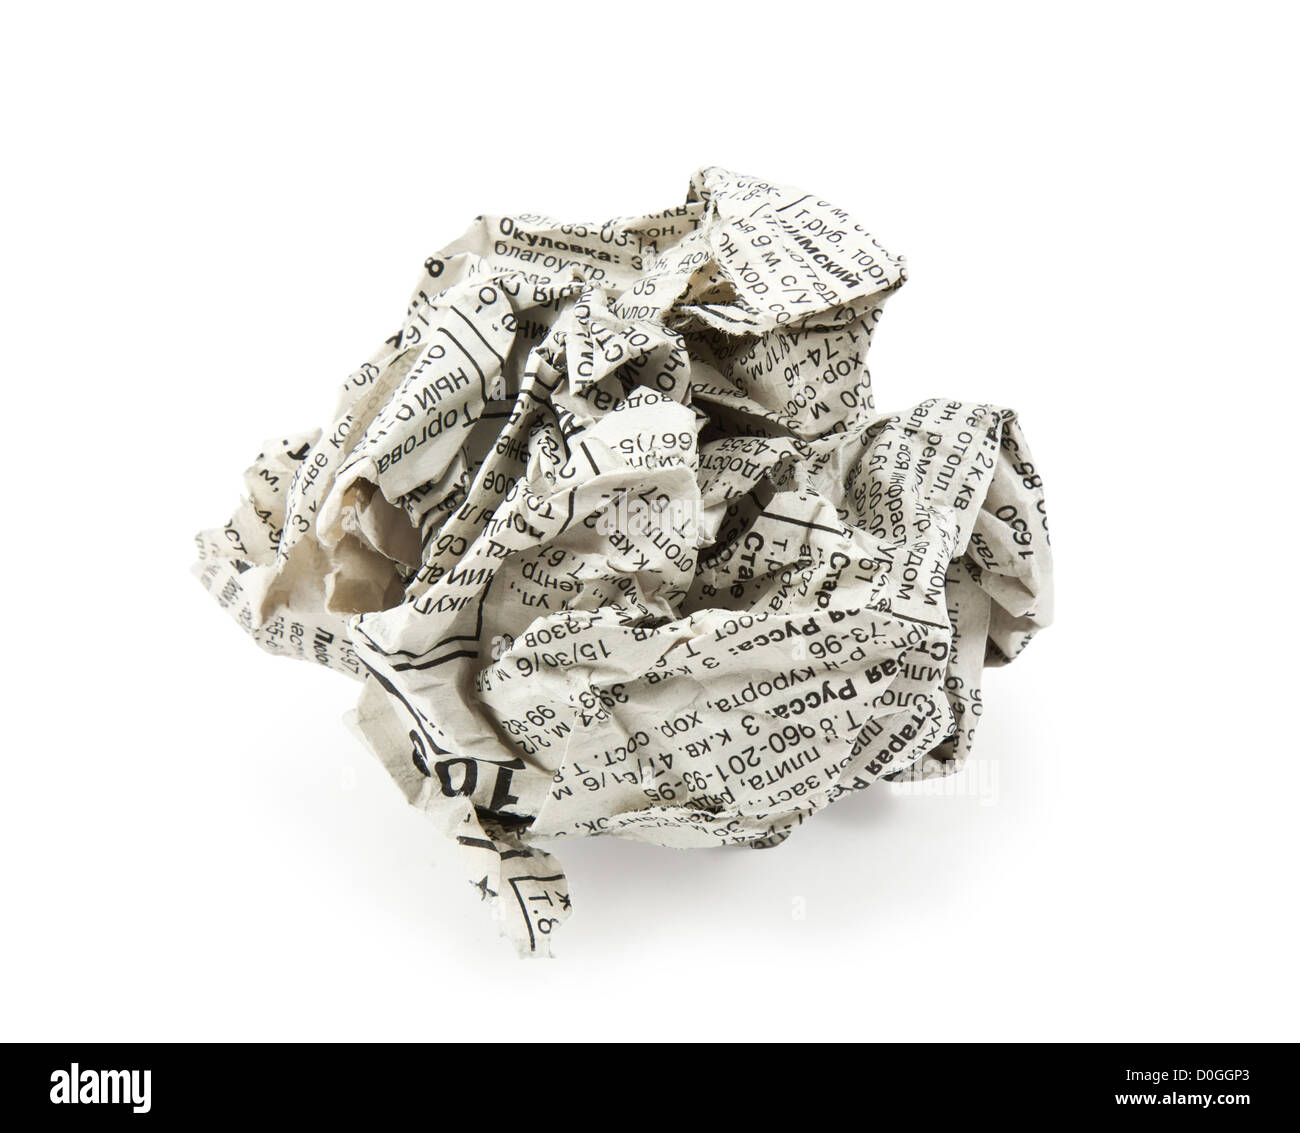 crumpled newspaper on a white background - Stock Image